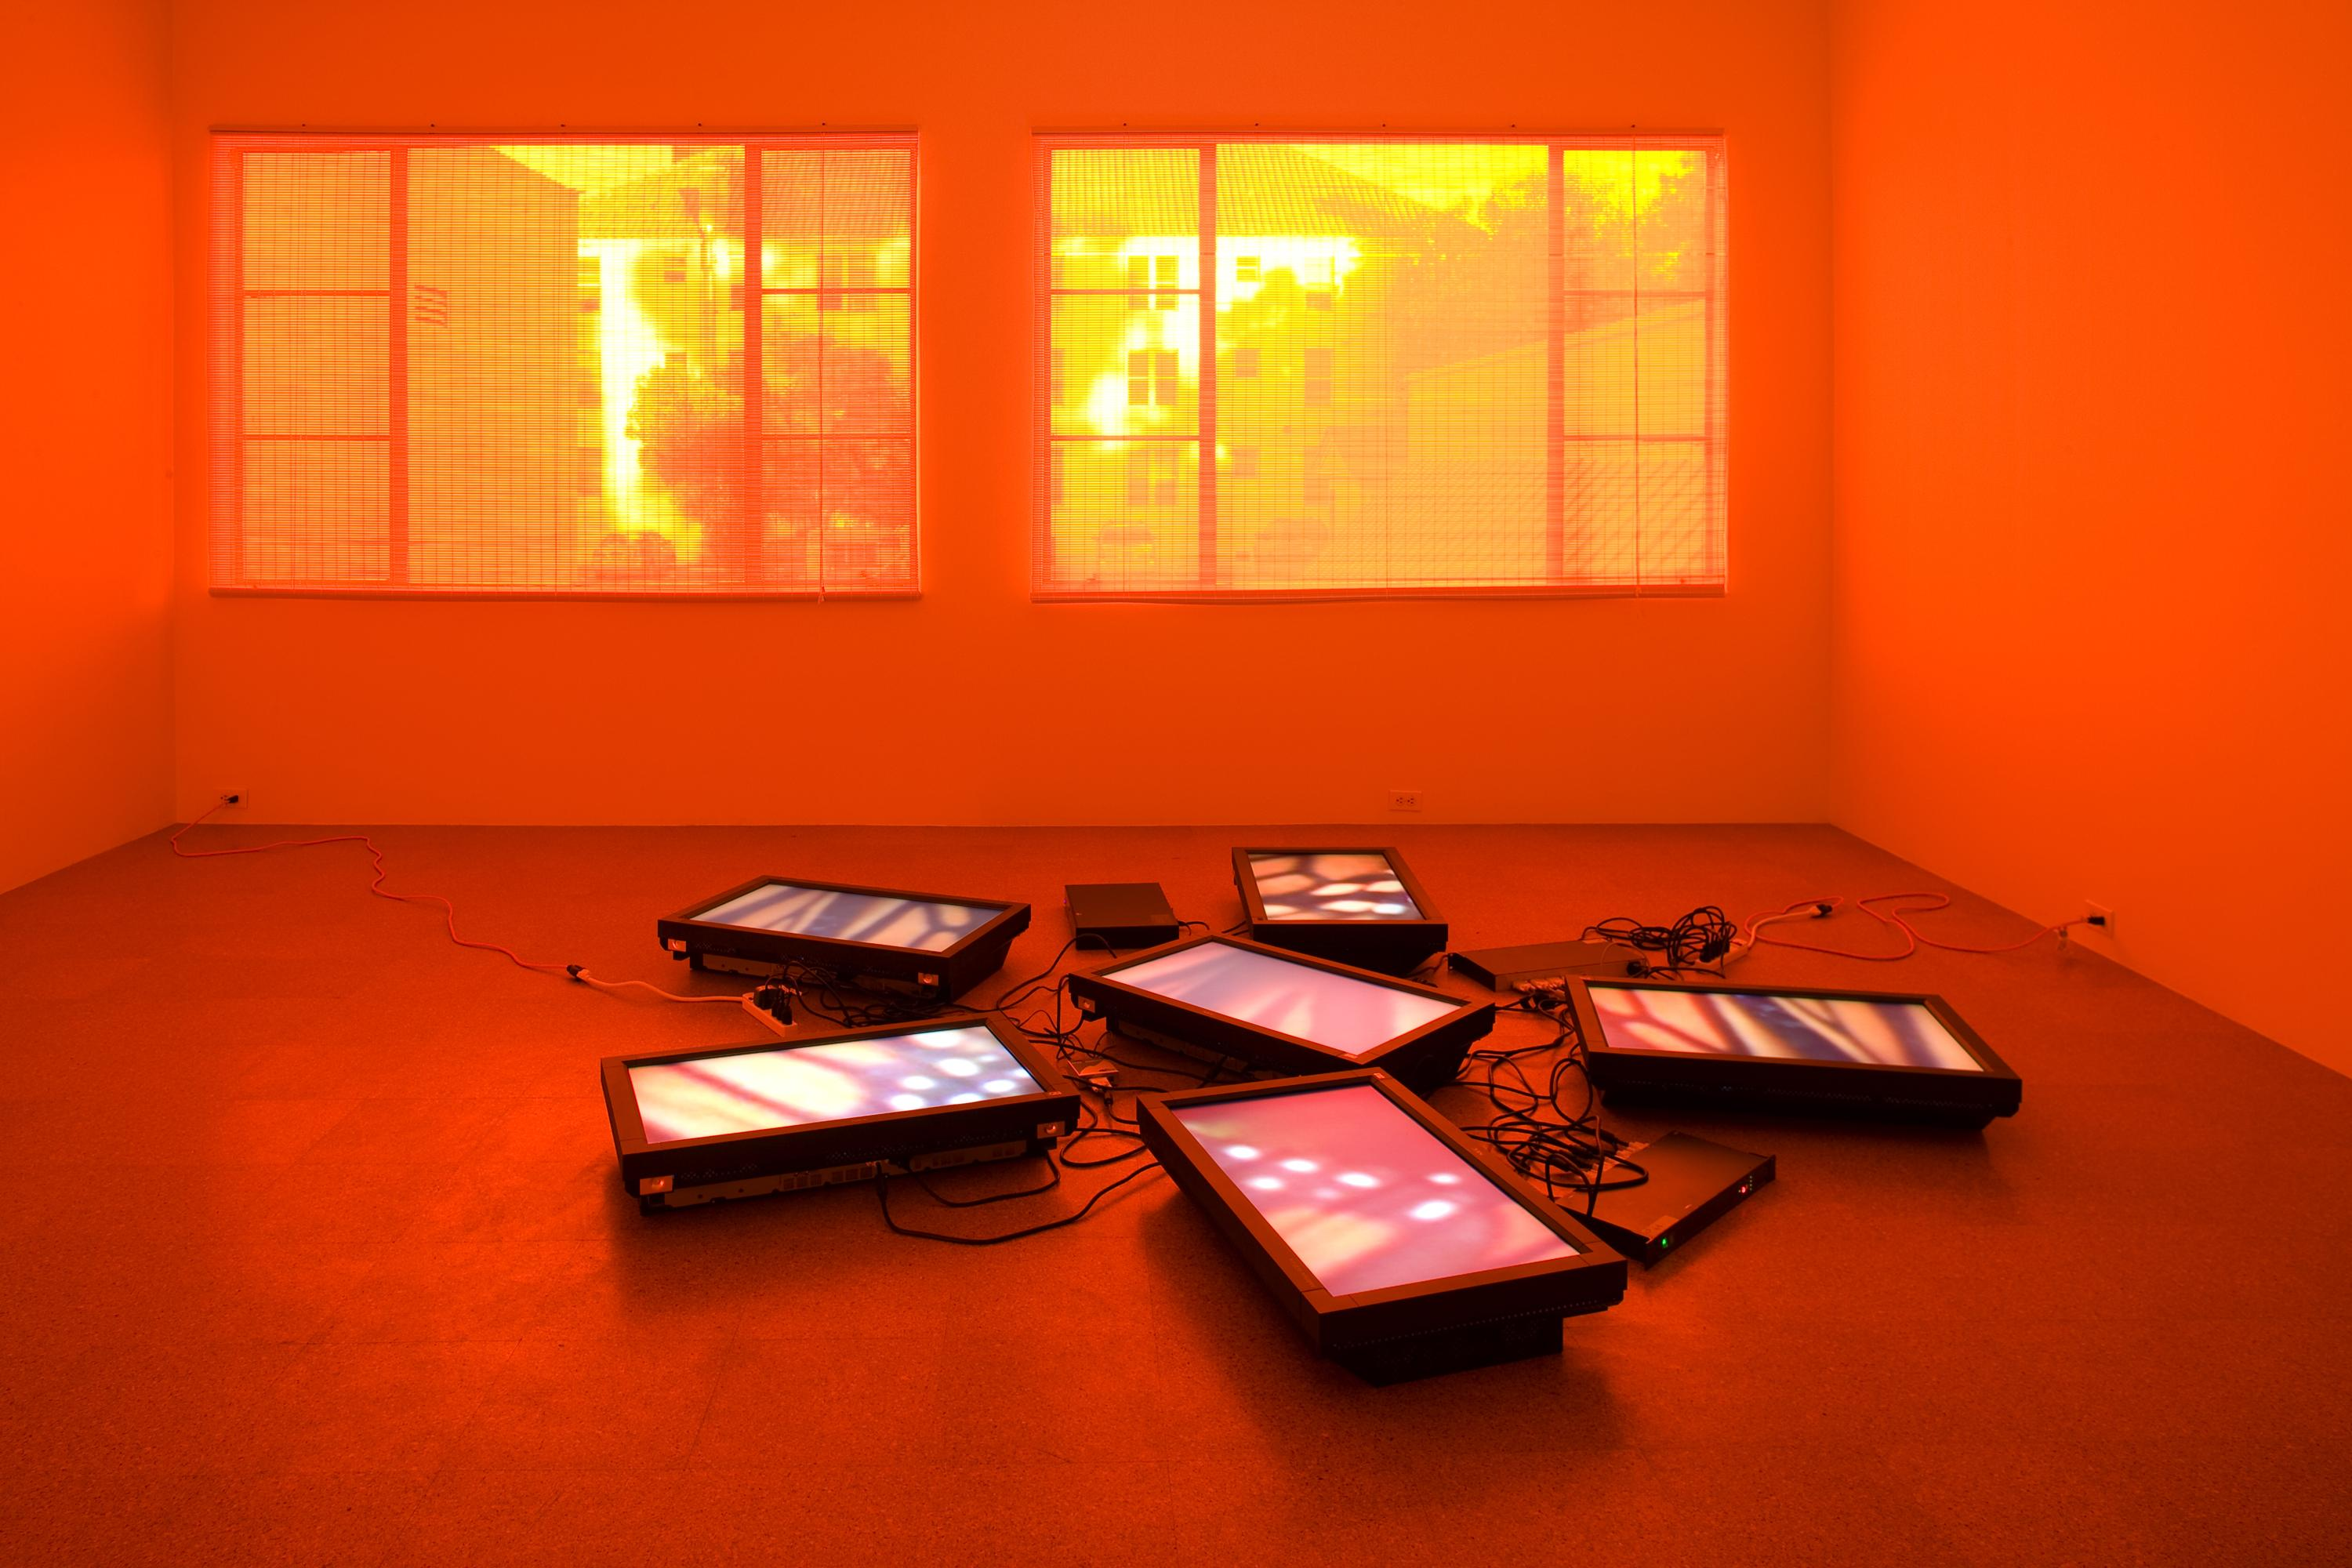 A room, lit up bright orange, contains five flat screen monitors and their cables on the floor. Each screen shows a close-up image of a butterfly wing.